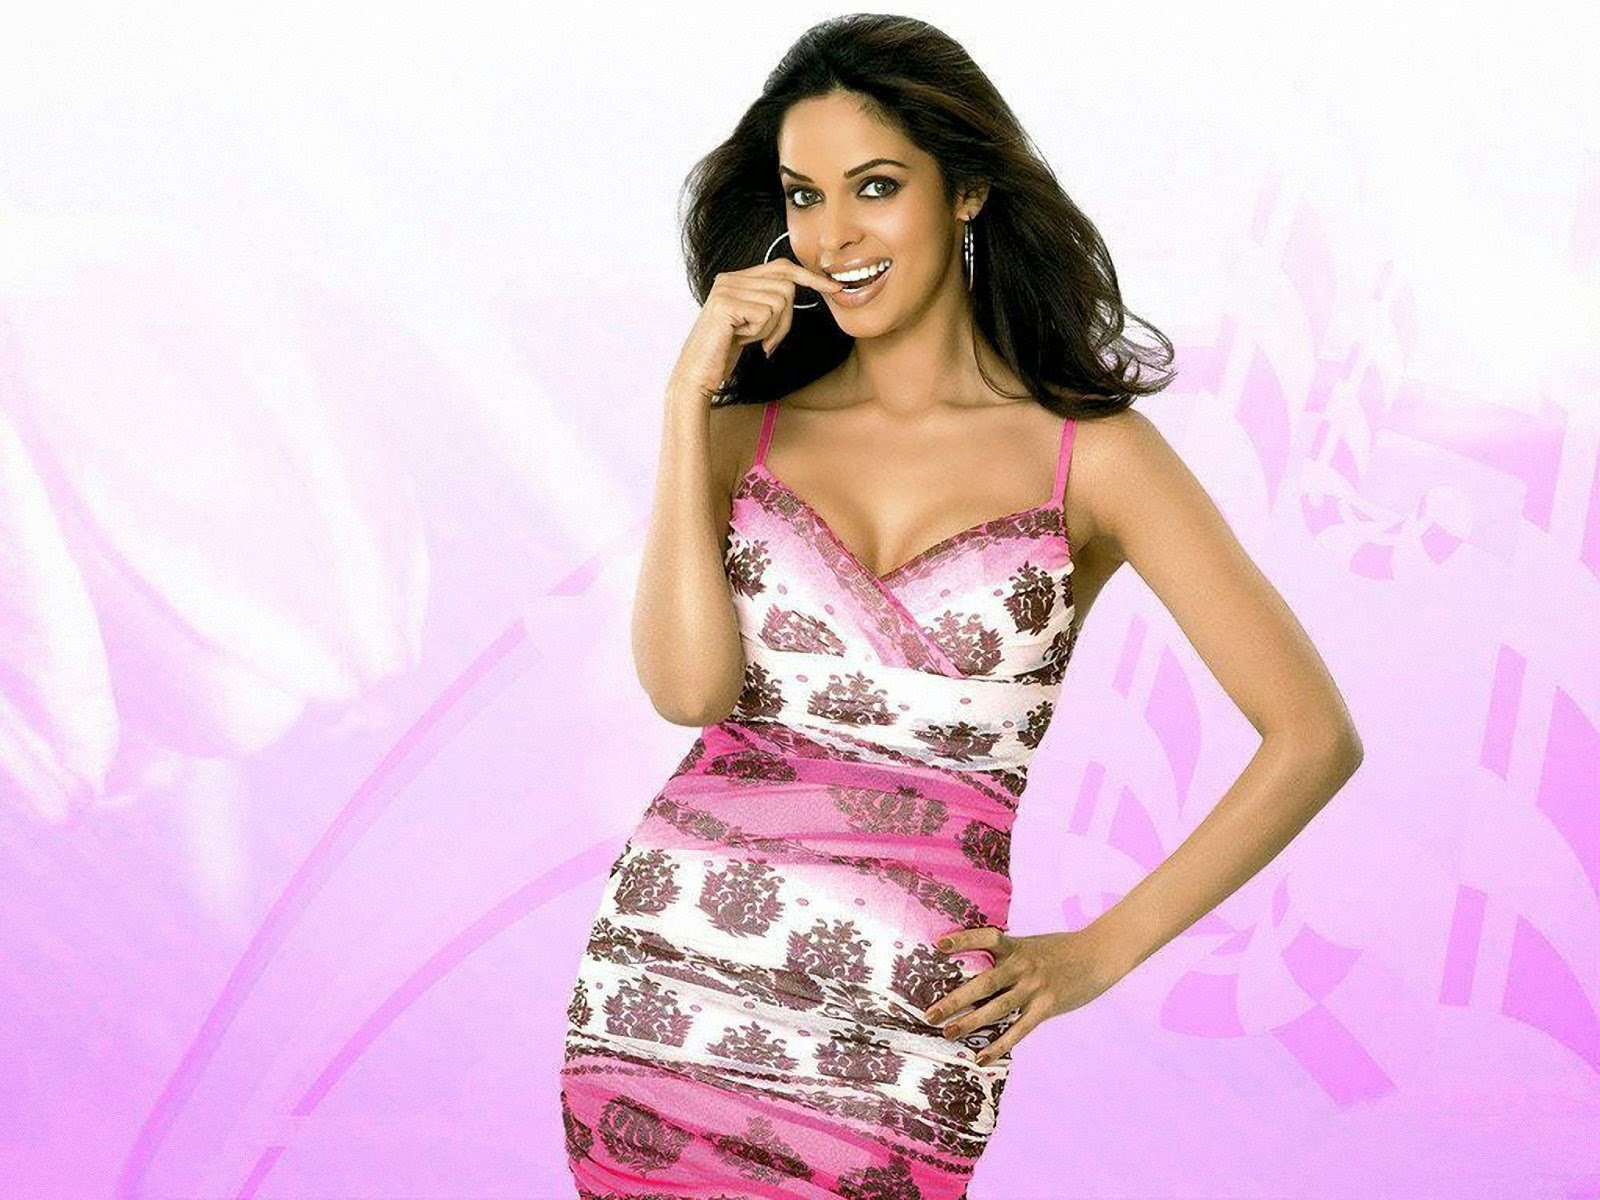 pictures jagat: mallika sherawat full hd wallpapers